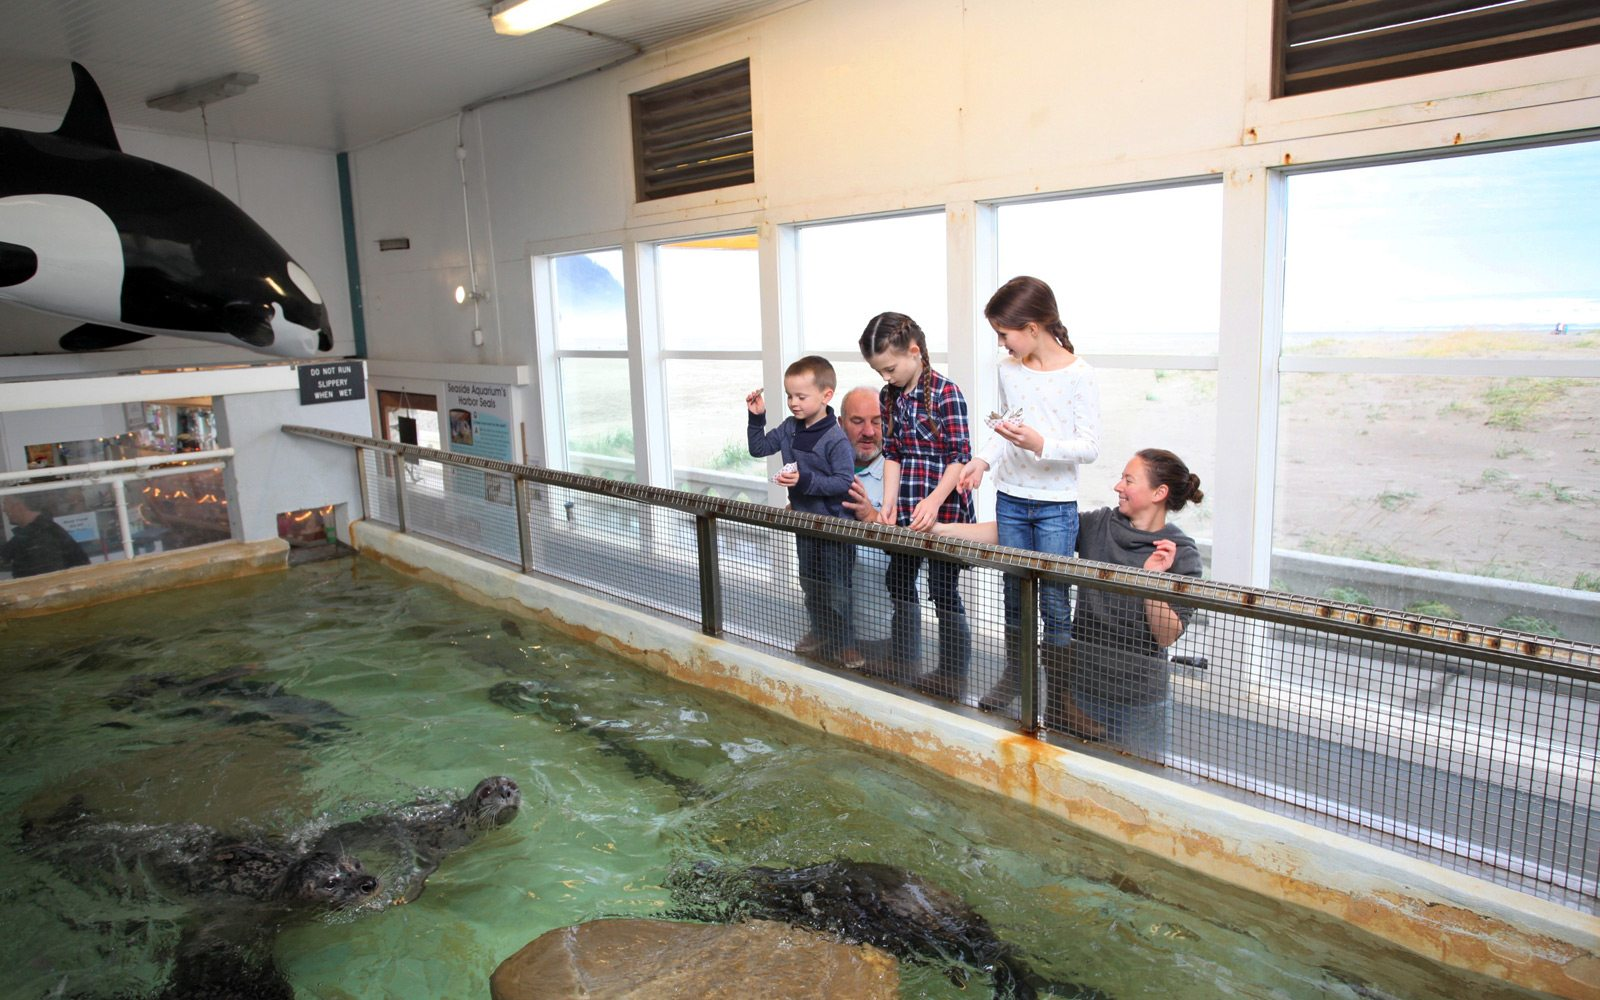 Children feed the Harbor Seals at the Seaside Aquarium in Seaside, Oregon.